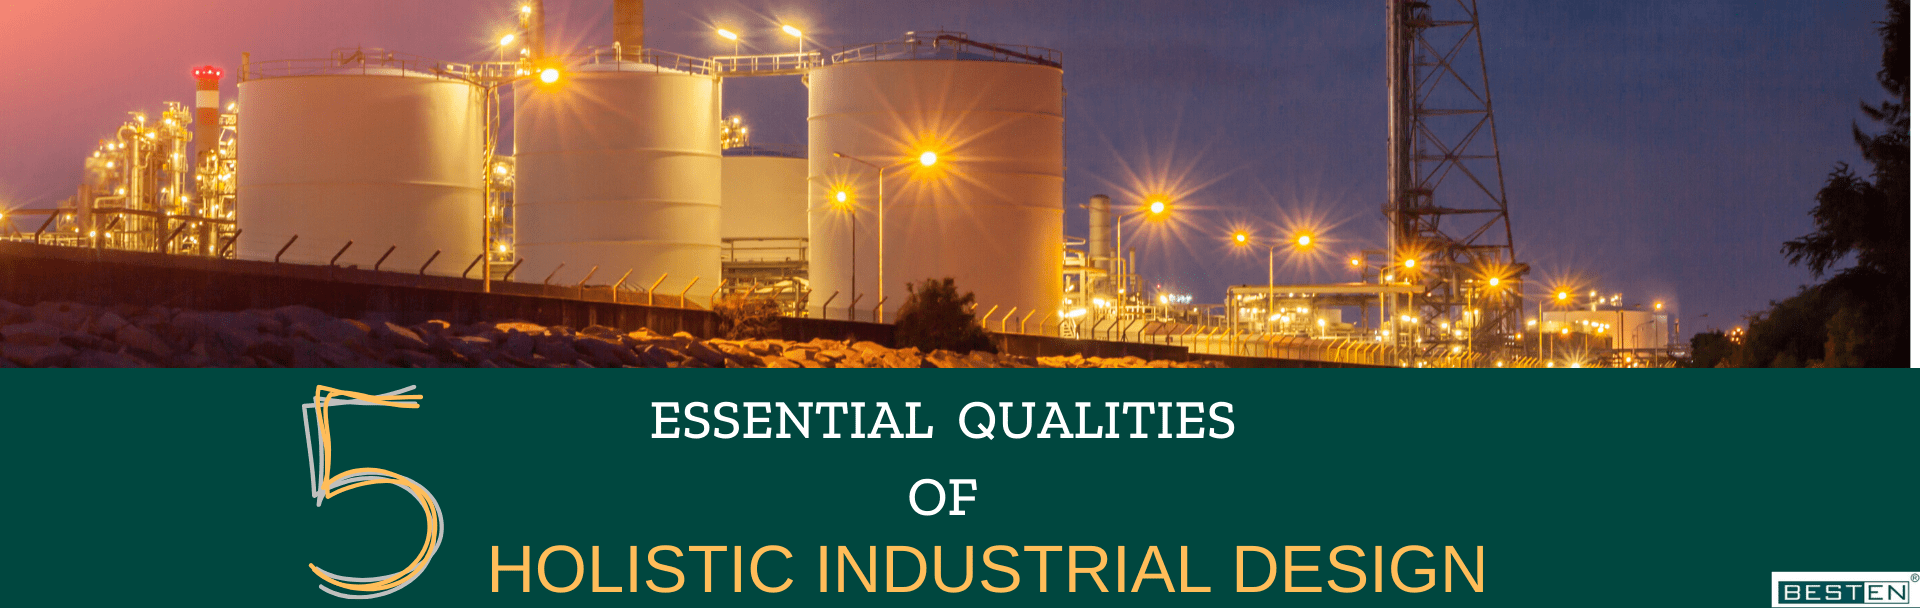 Holistic industrial infrastructure design